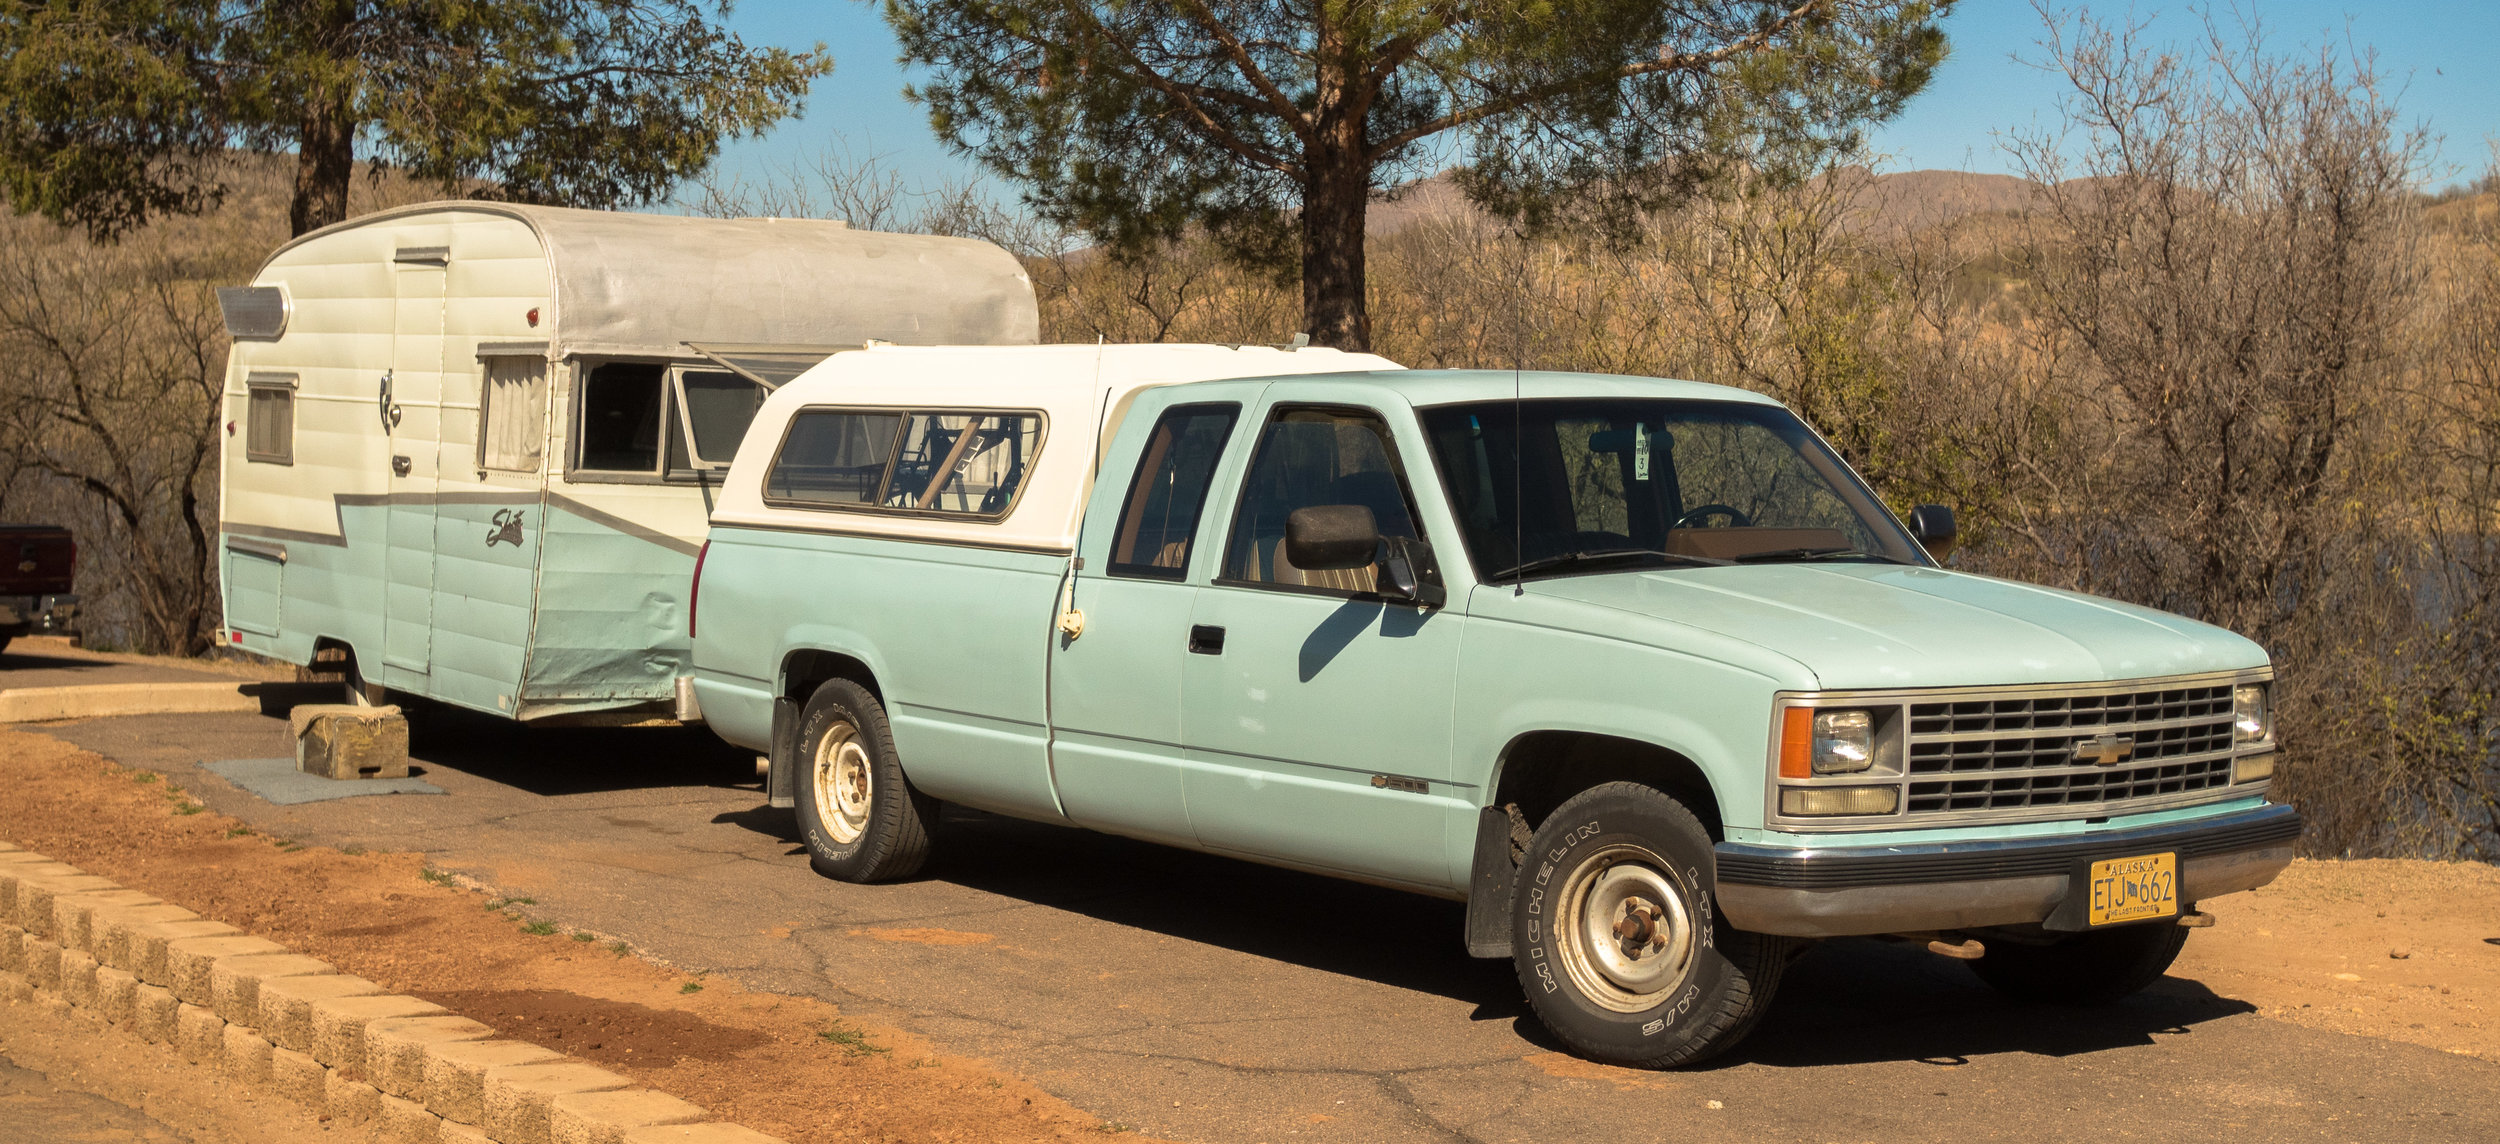 Retro works in Arizona, in Patagonia State Park Campground.